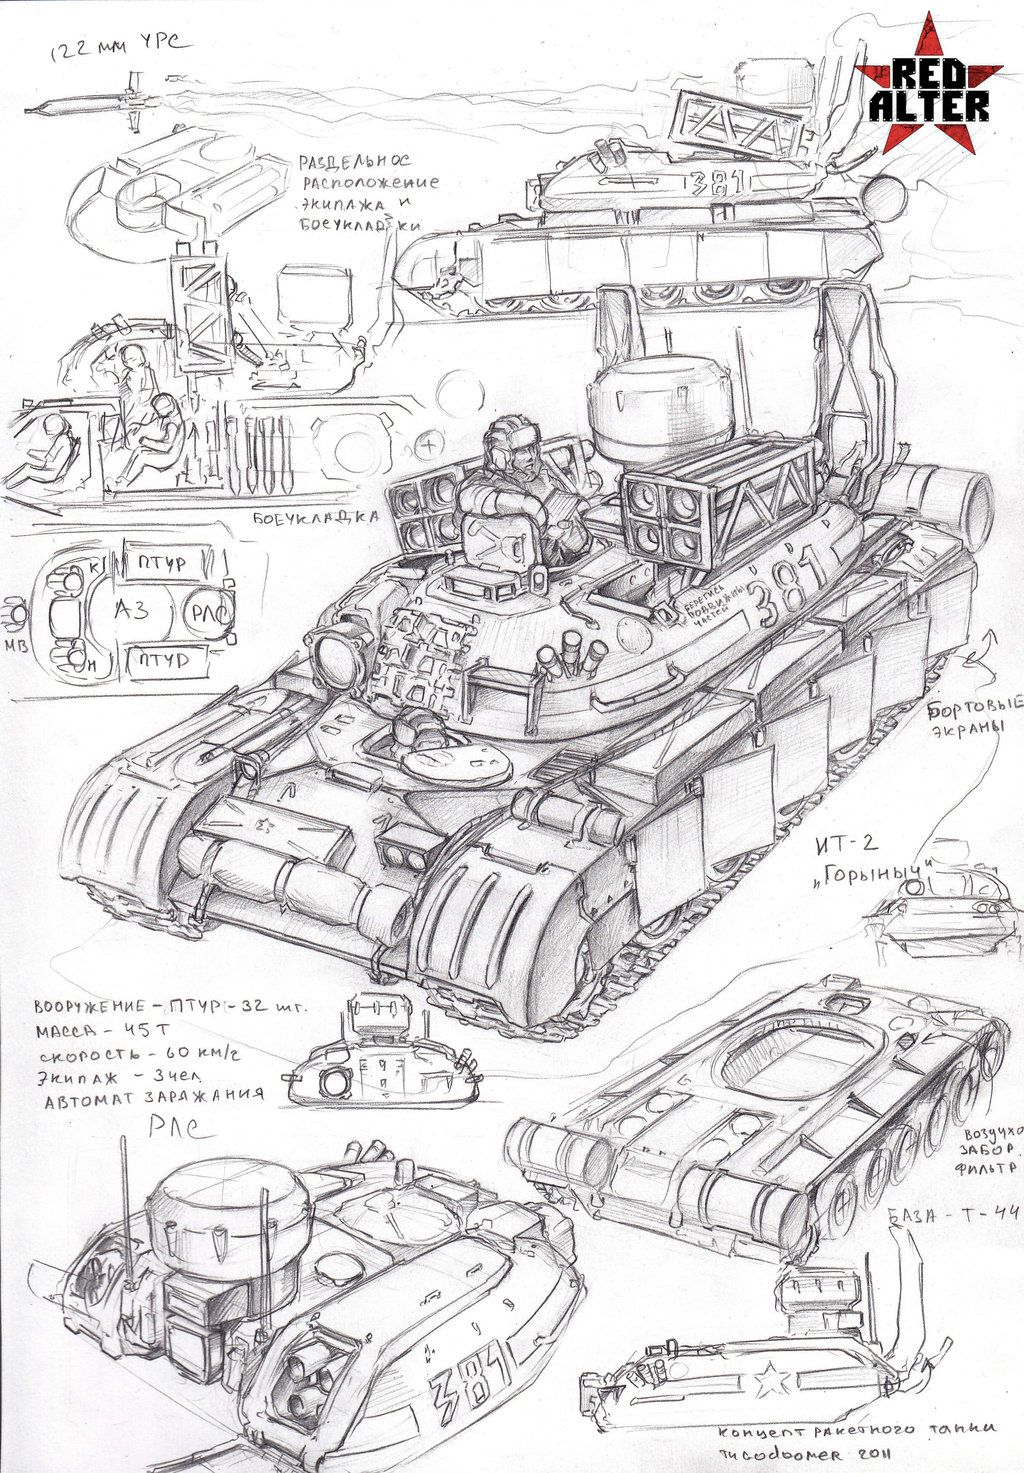 tank drawing reference gdlawct TCM Forklift Parts Breakdown rt 2 by tugodoomer initiatives to attempt drawings artwork sketches